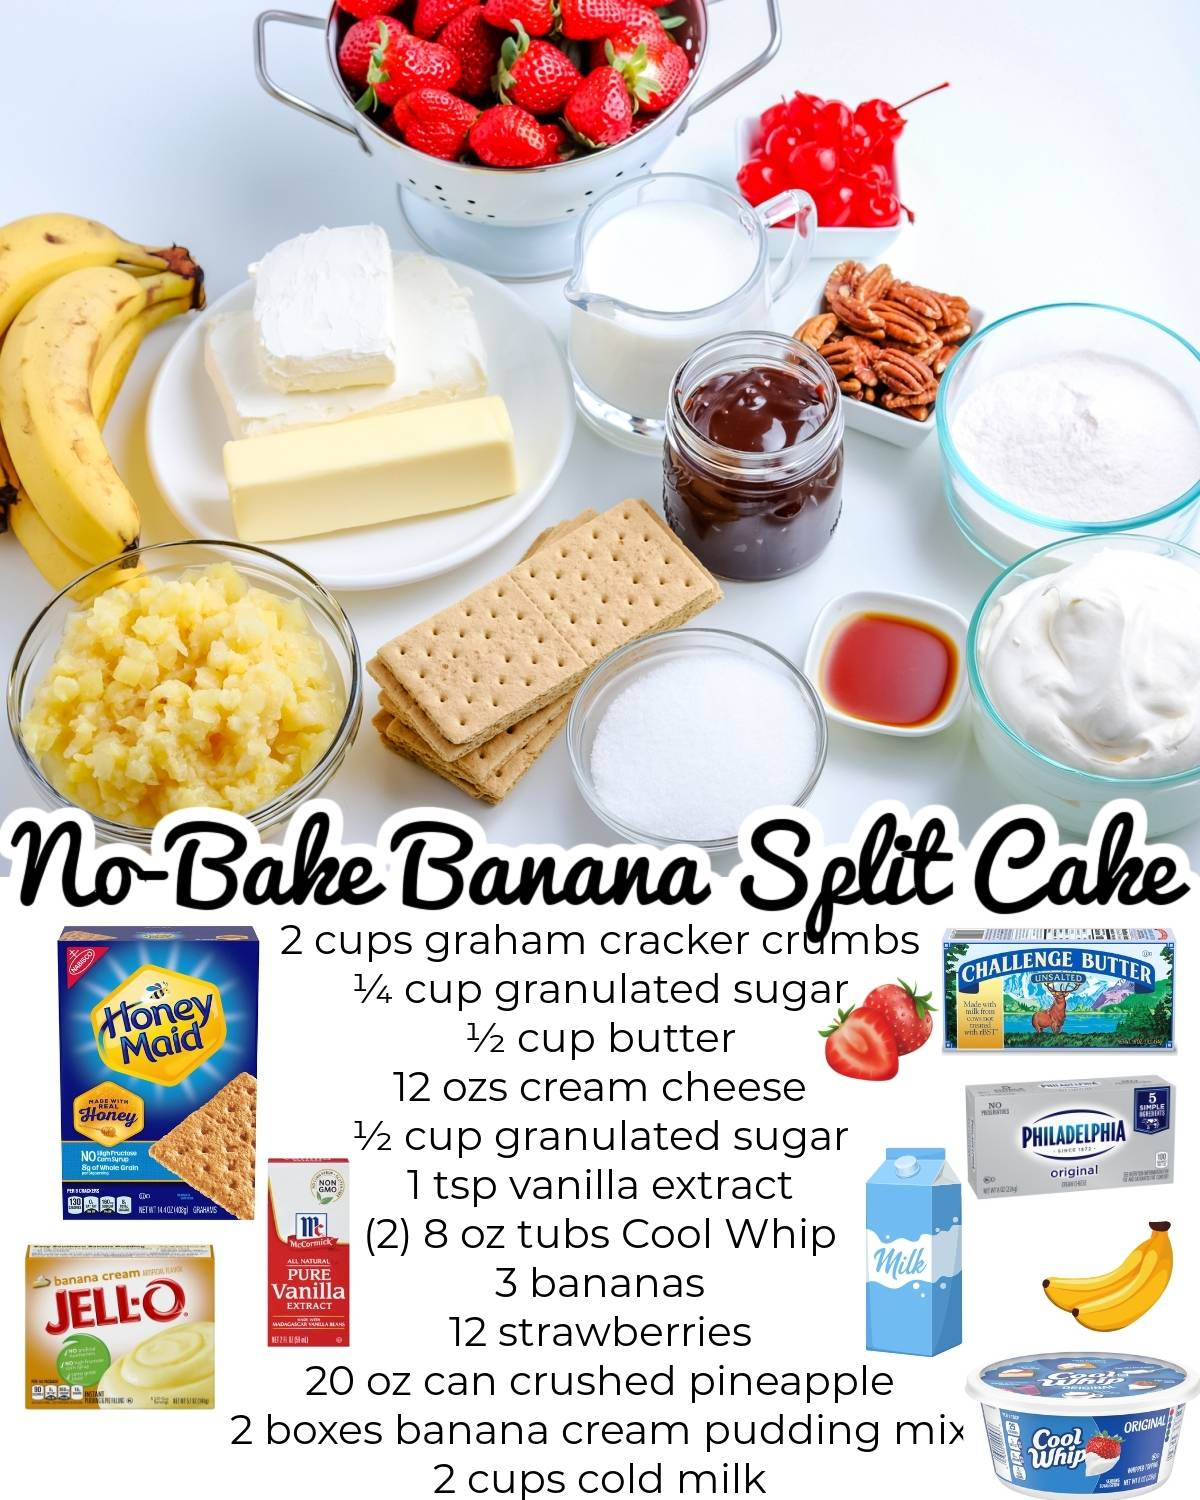 All of the ingredients needed to make this no-bake dessert.